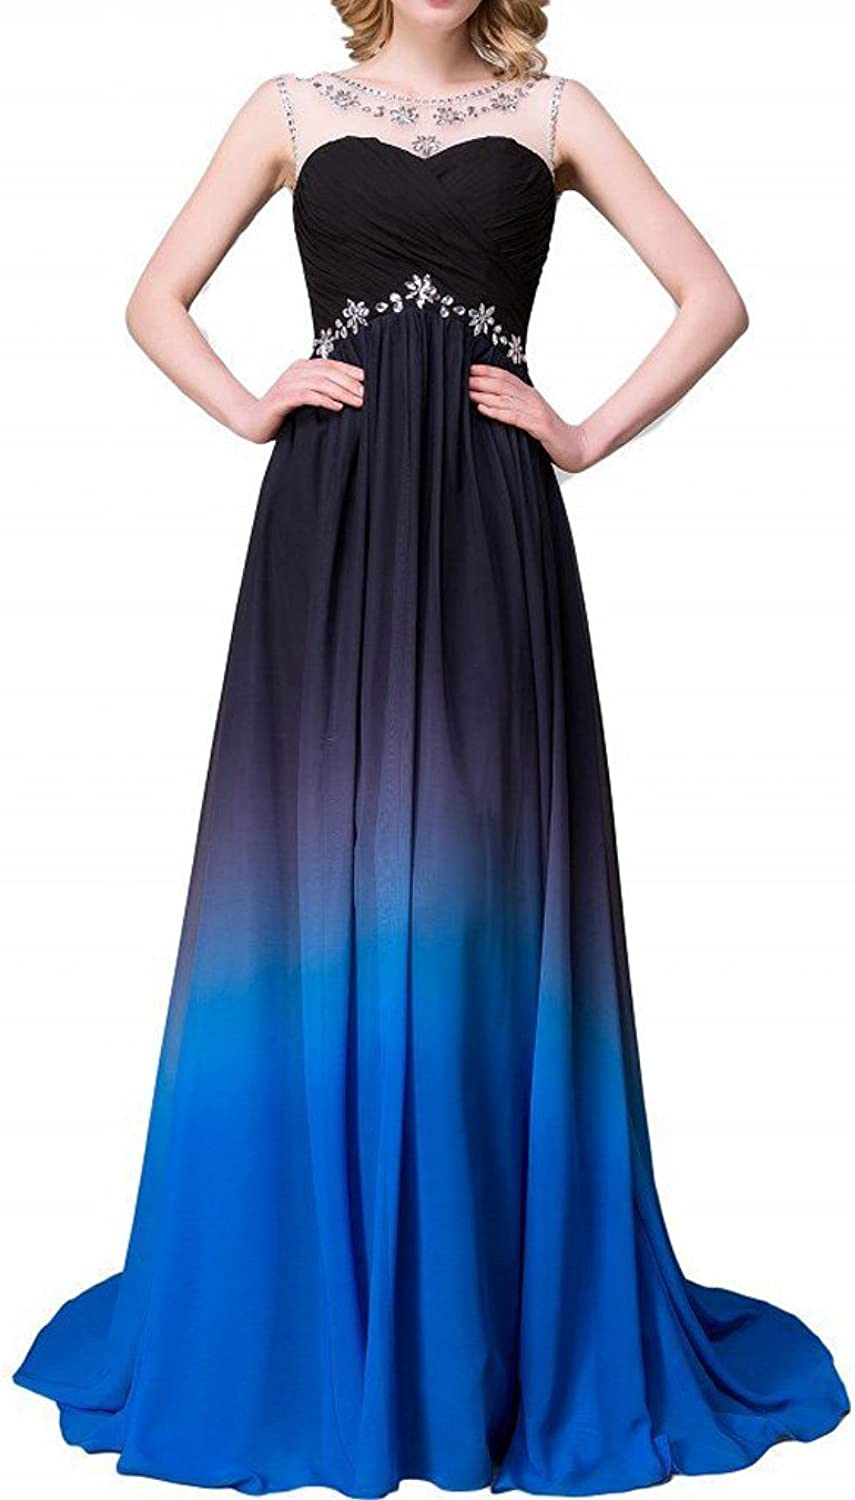 YanLian 2017 Gradient color Prom Evening Dress Beaded Ball Gown YL030